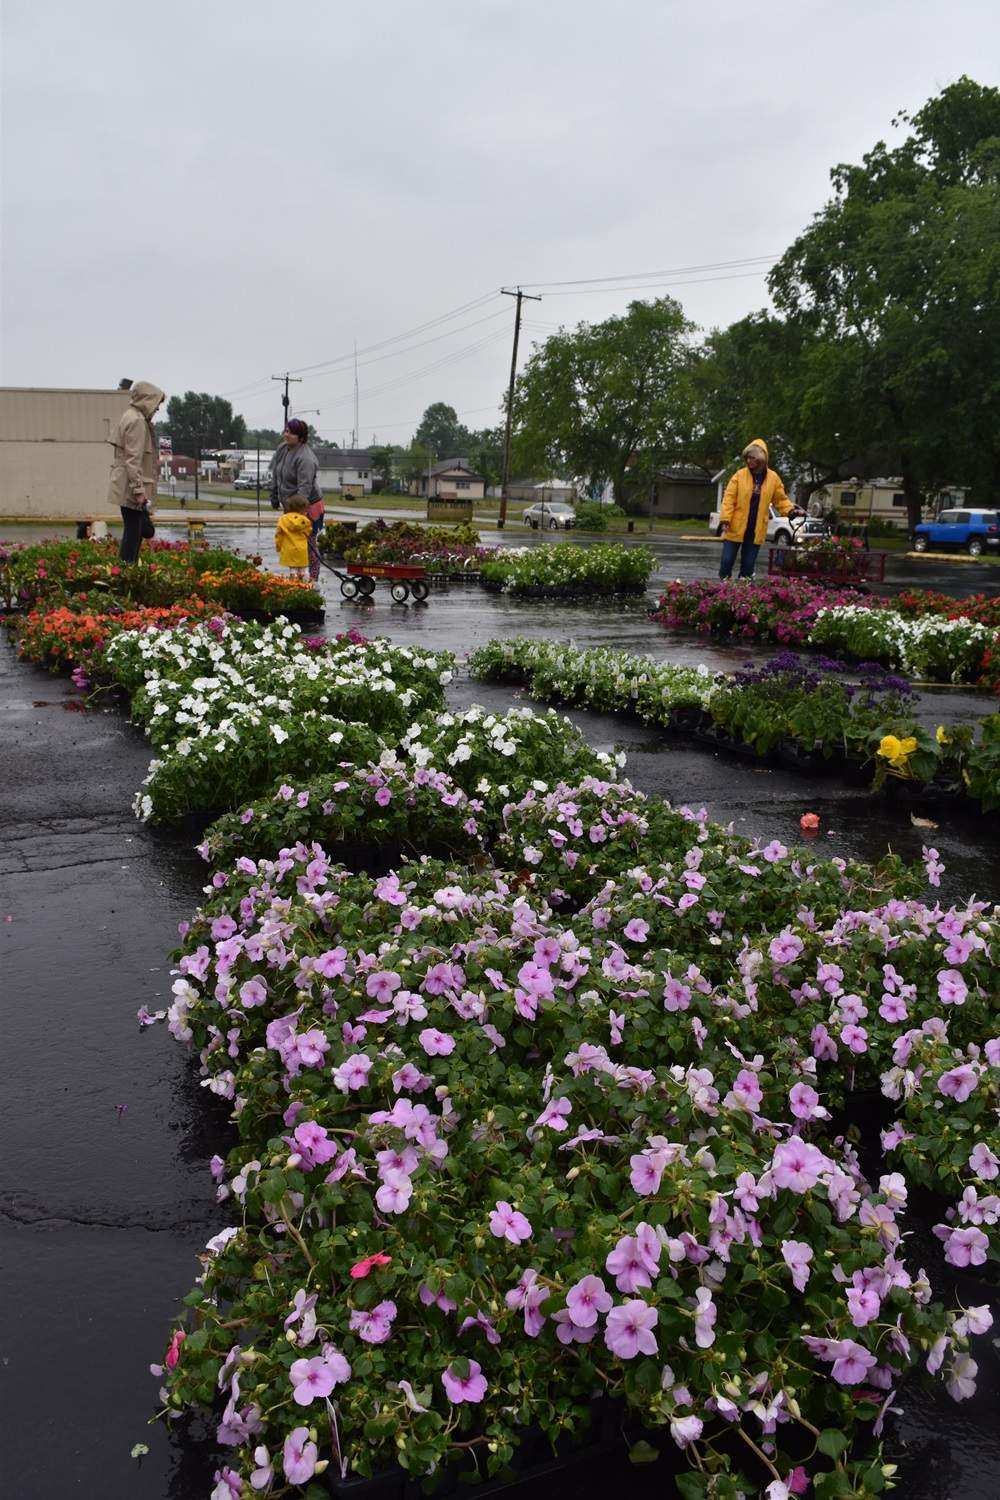 Overcast skies bring out the vivid colors in many of the garden club's flowers.